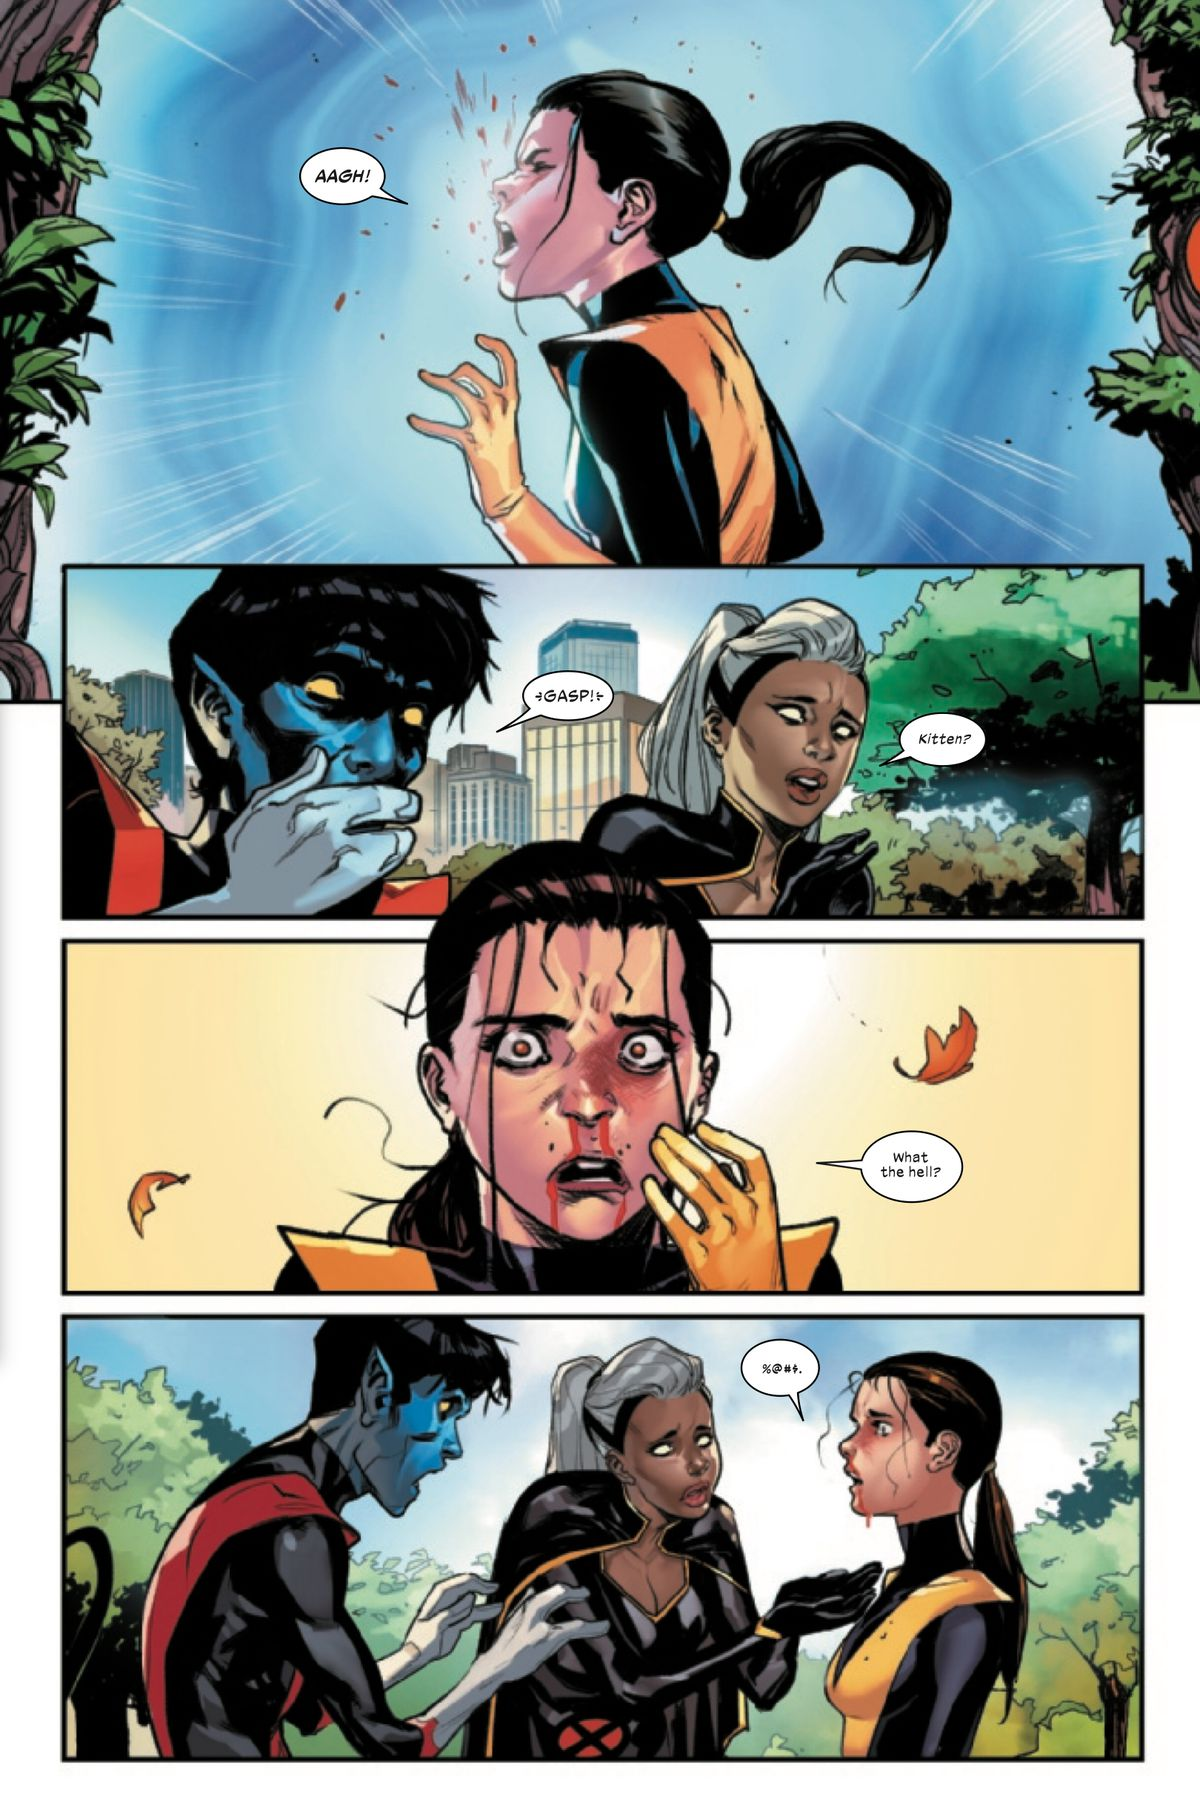 Kate Pryde smacks into a Krakoan portal so hard she bloodies her nose. Nightcrawler and Storm look on in horror, in Marauders #1, Marvel Comics (2019).